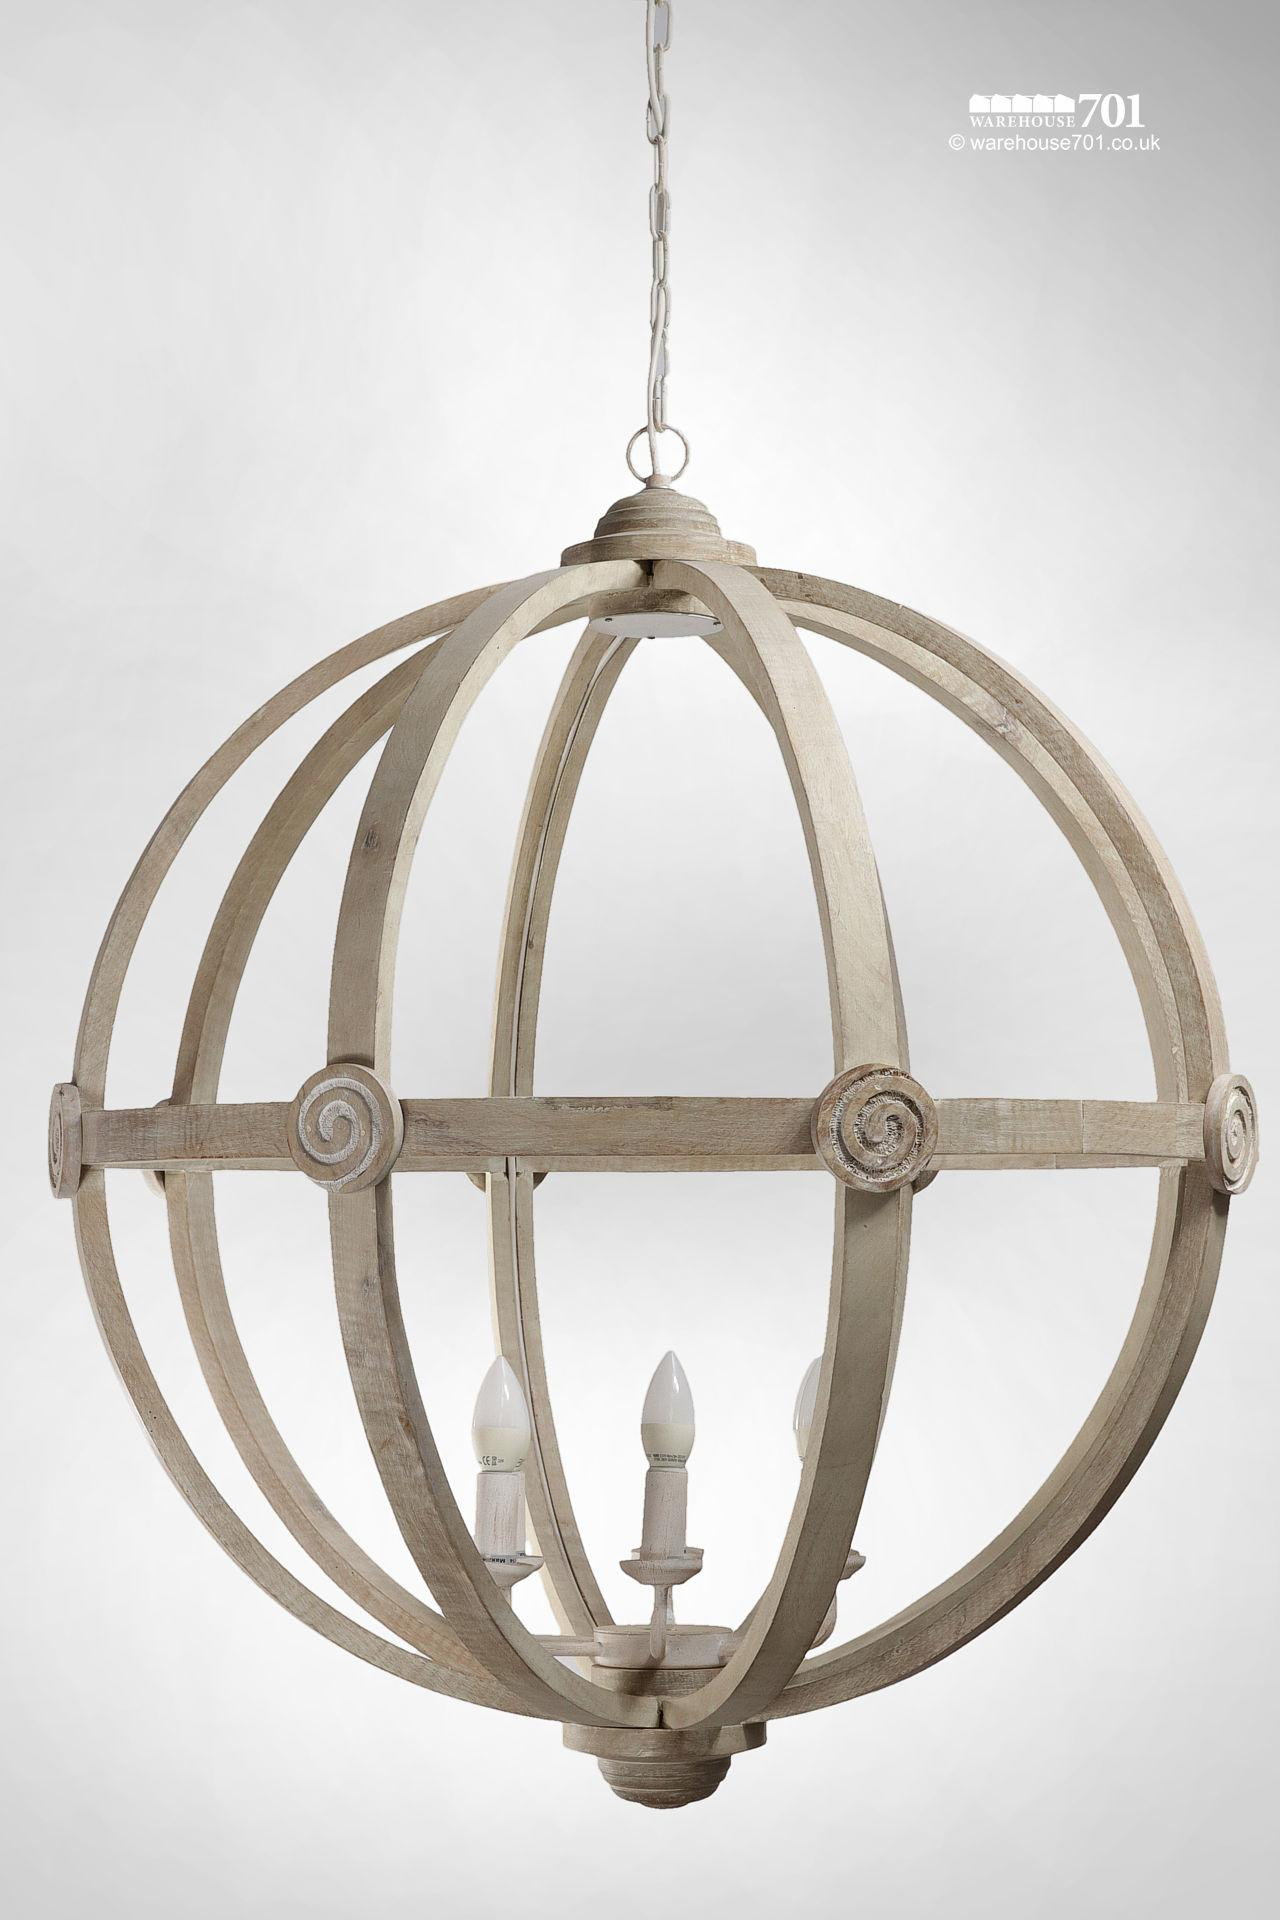 New Large Cream Colour Wood Orb Ceiling Light #3